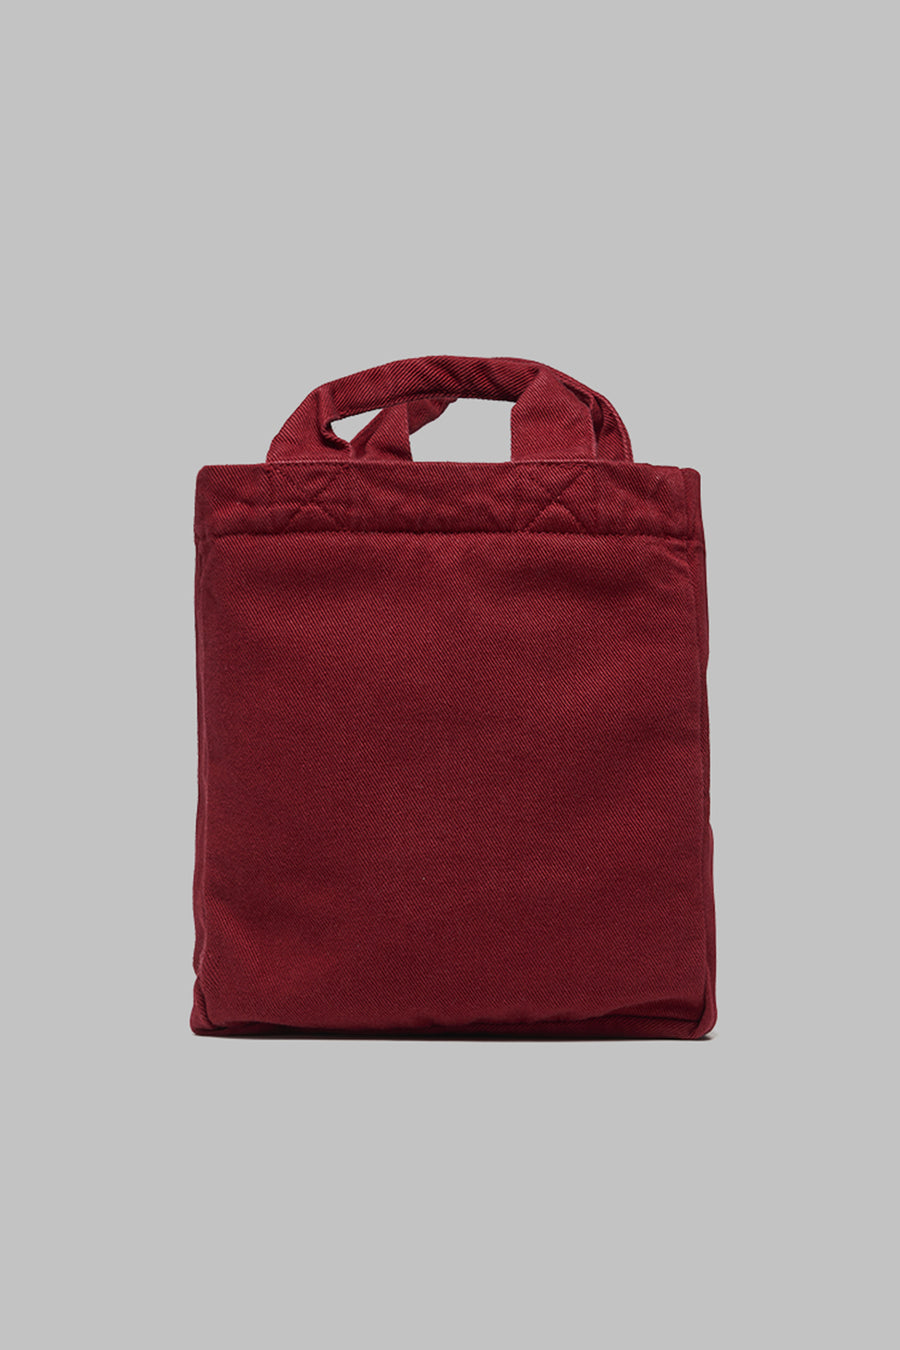 ØLÅF Mini Tote Bag <br>Maroon